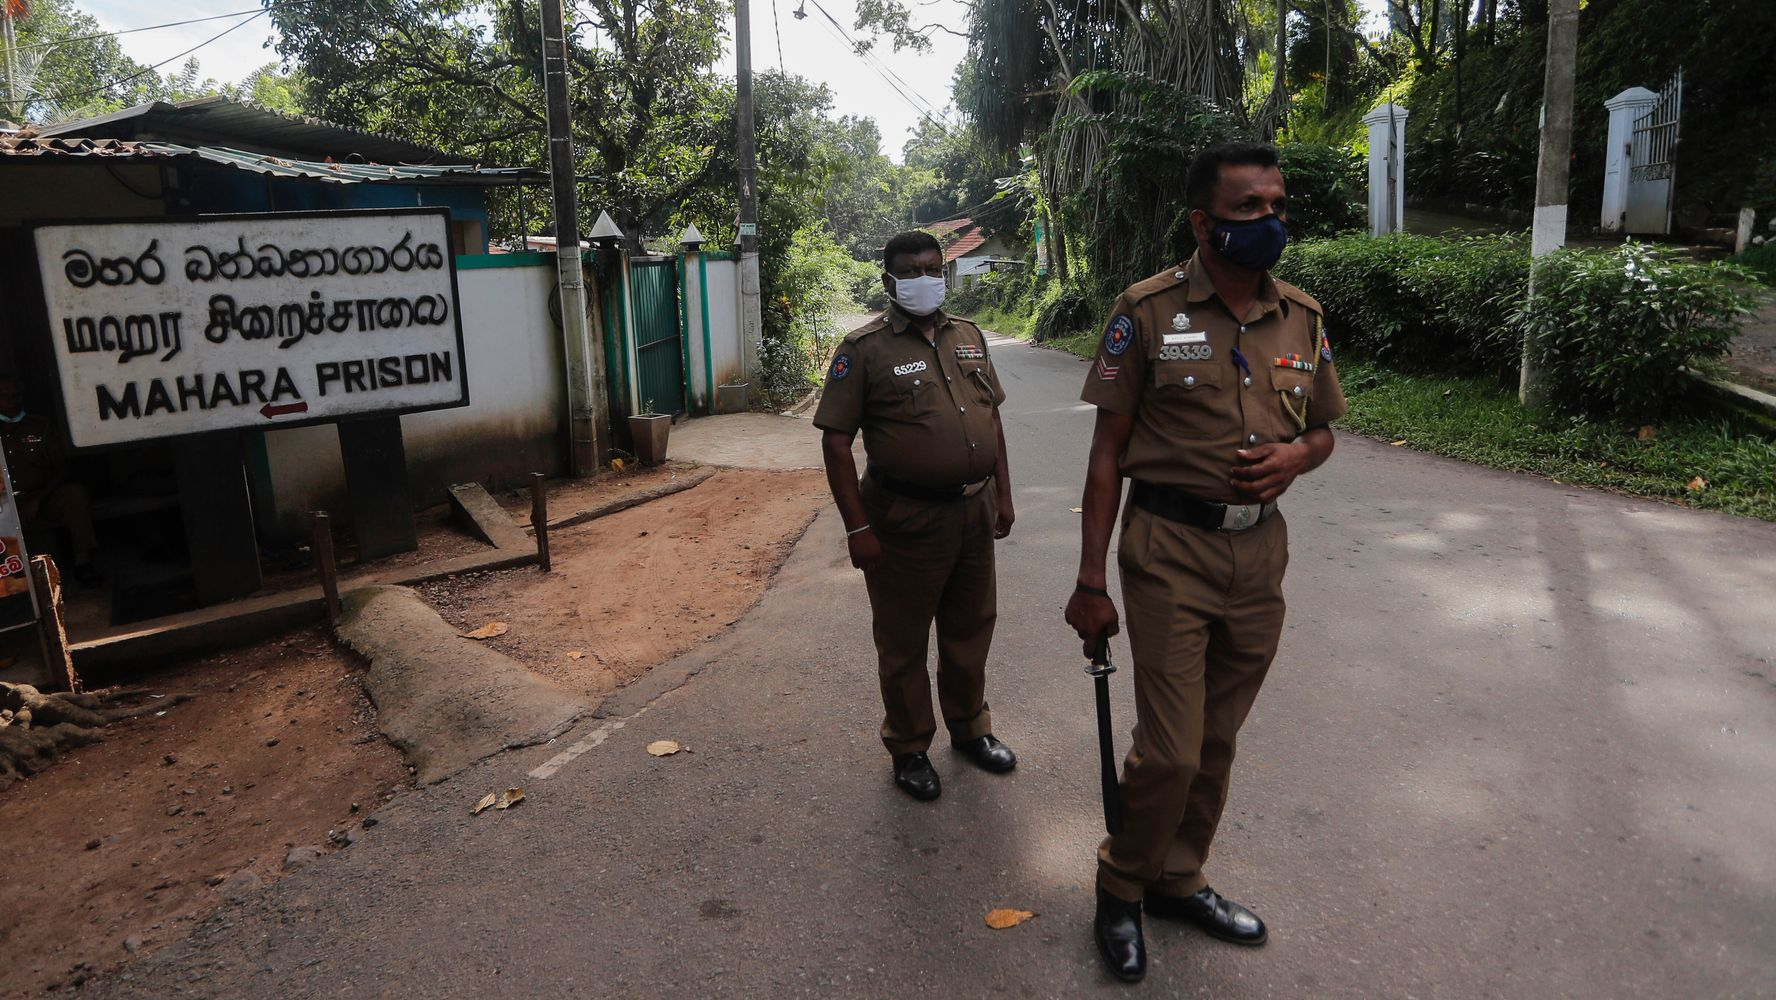 Sri Lanka Prison Riot Over COVID-19 Conditions Leaves 8 Dead, Over 50 Wounded